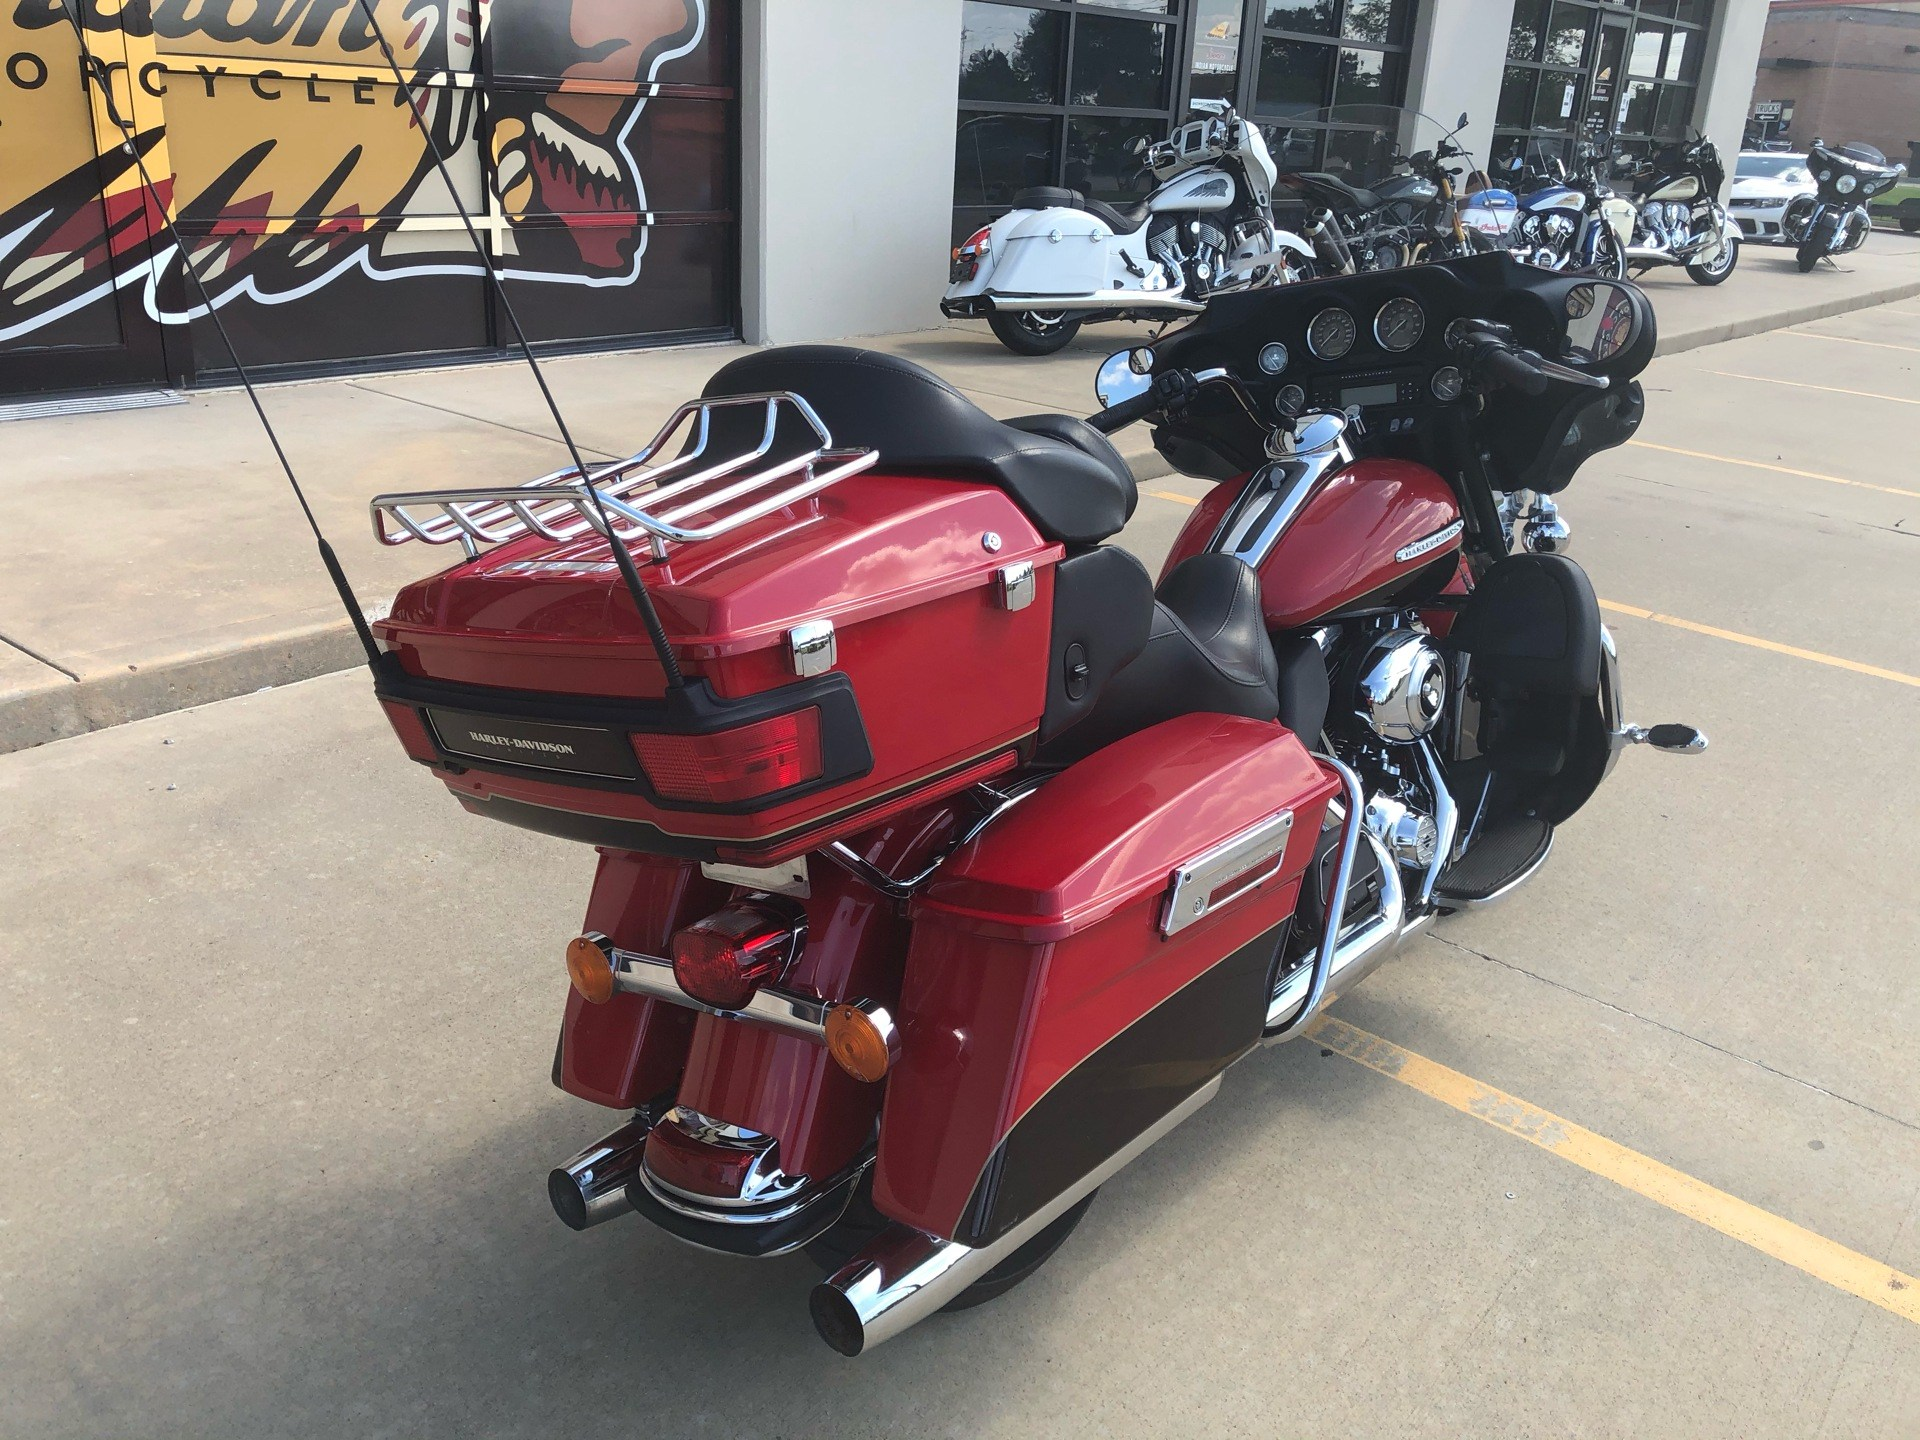 2011 Harley-Davidson Electra Glide® Ultra Limited in Norman, Oklahoma - Photo 8